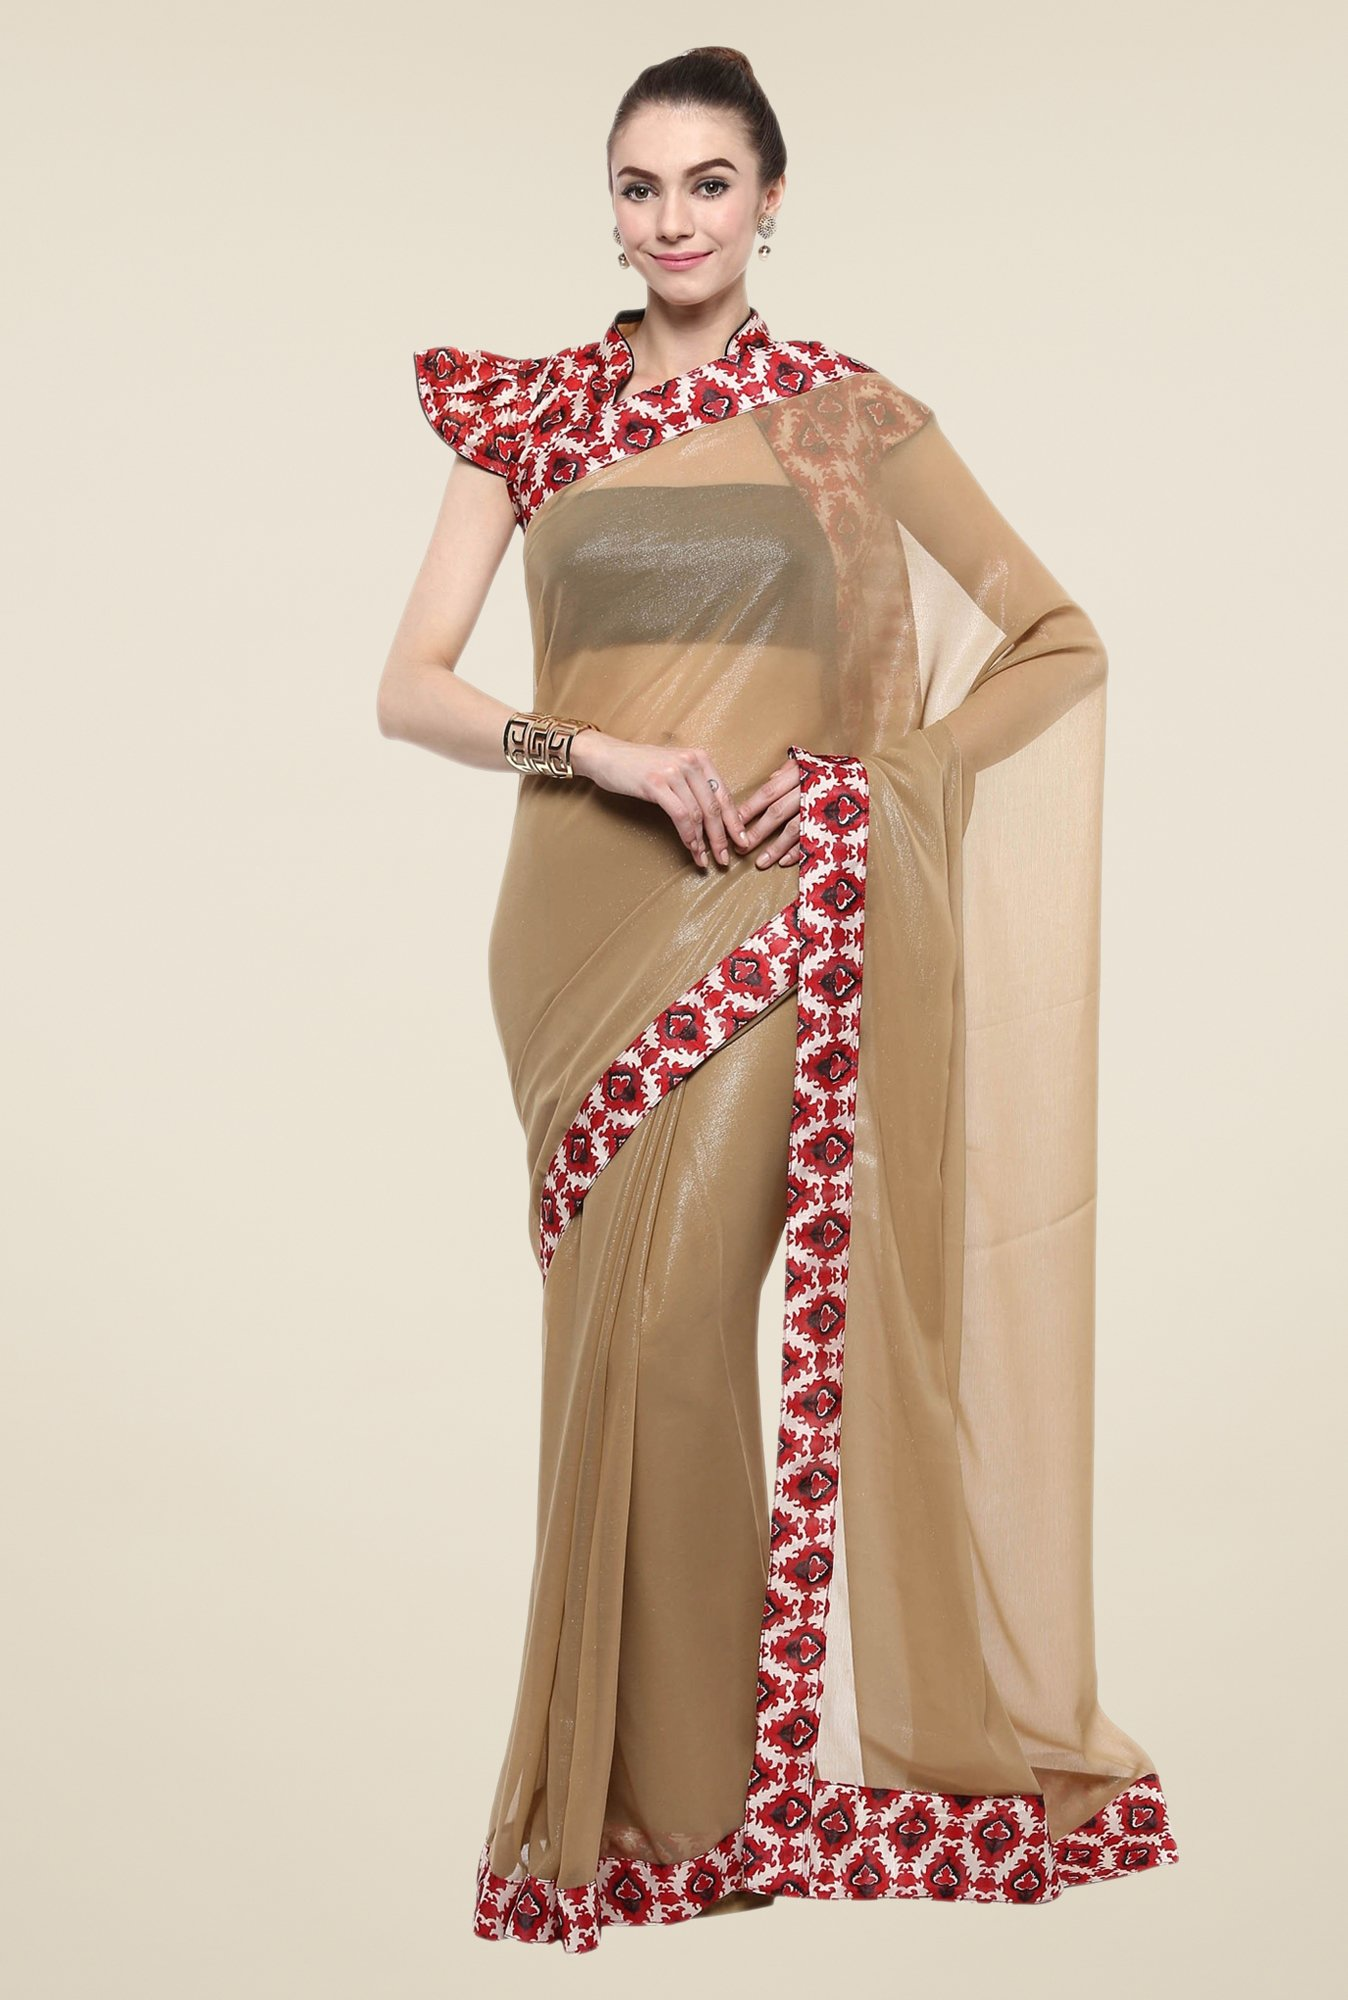 Triveni Beige Solid Georgette Shimmer Free Size Saree